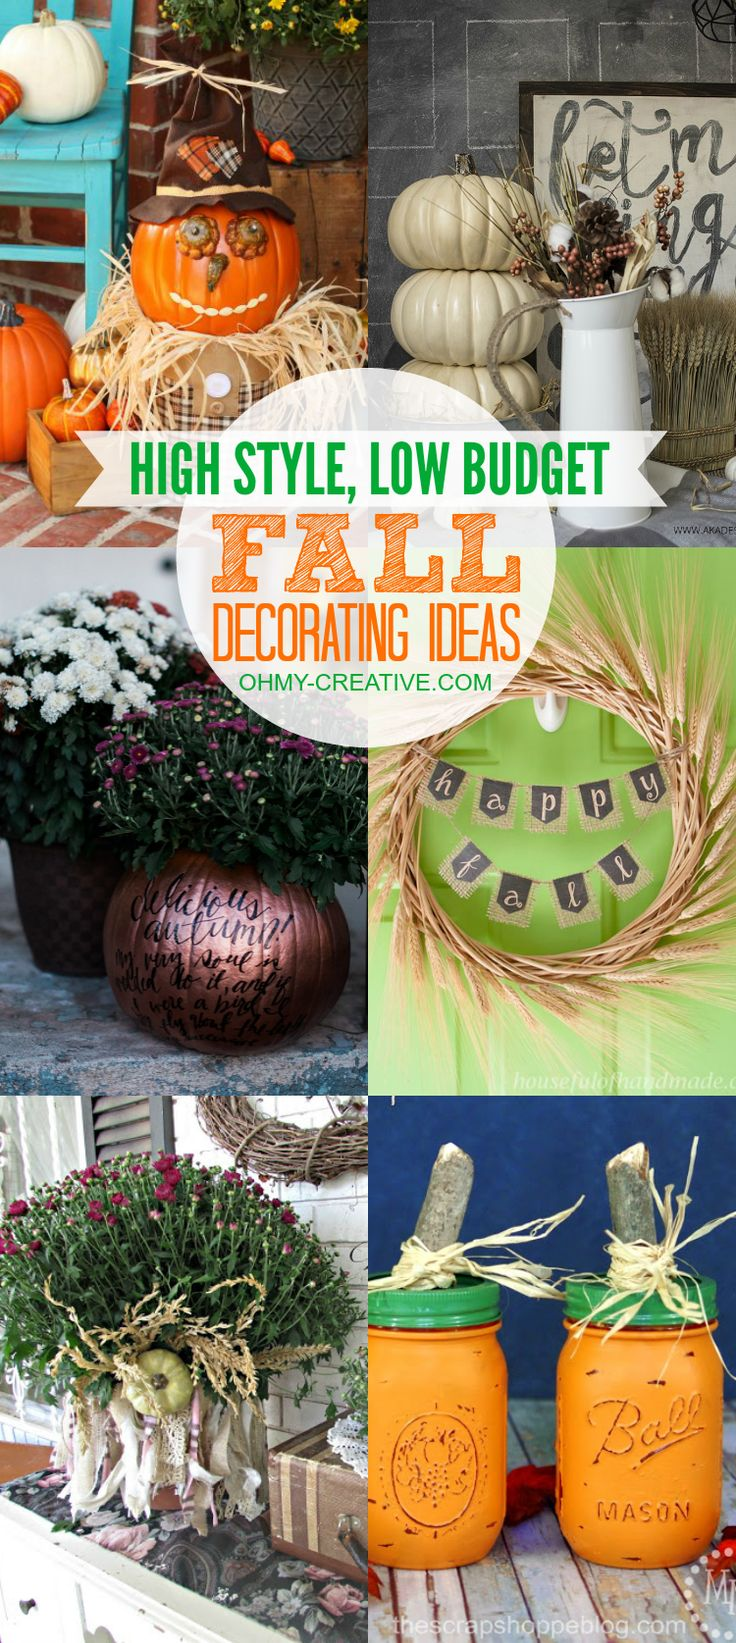 Easy outdoor fall decorating ideas - High Style Low Budget Fall Decorating Ideas